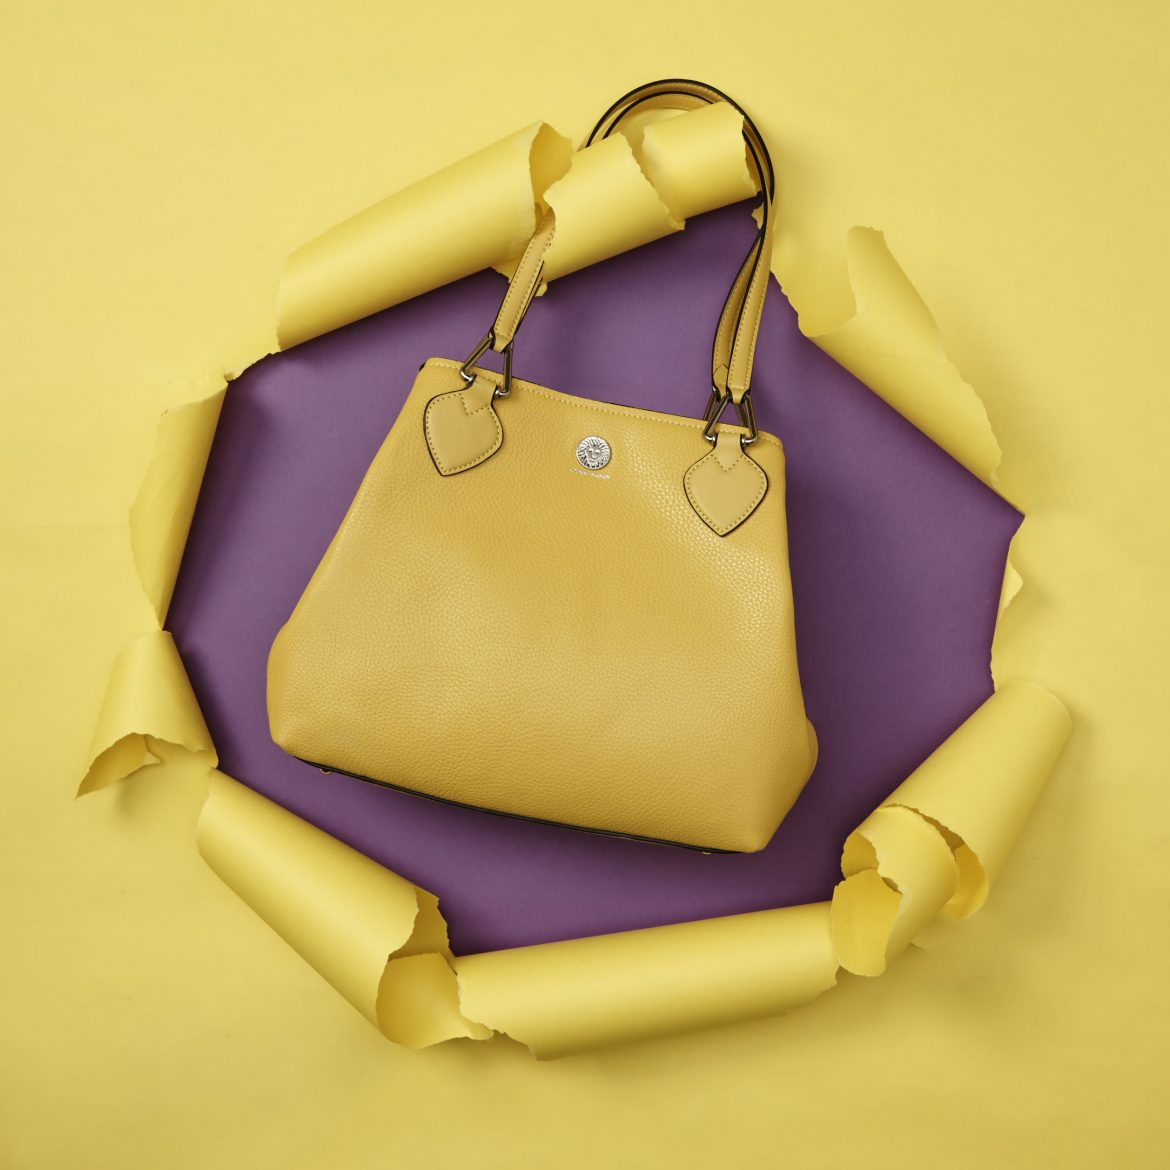 Studio Anne Klein Purse Product Photography